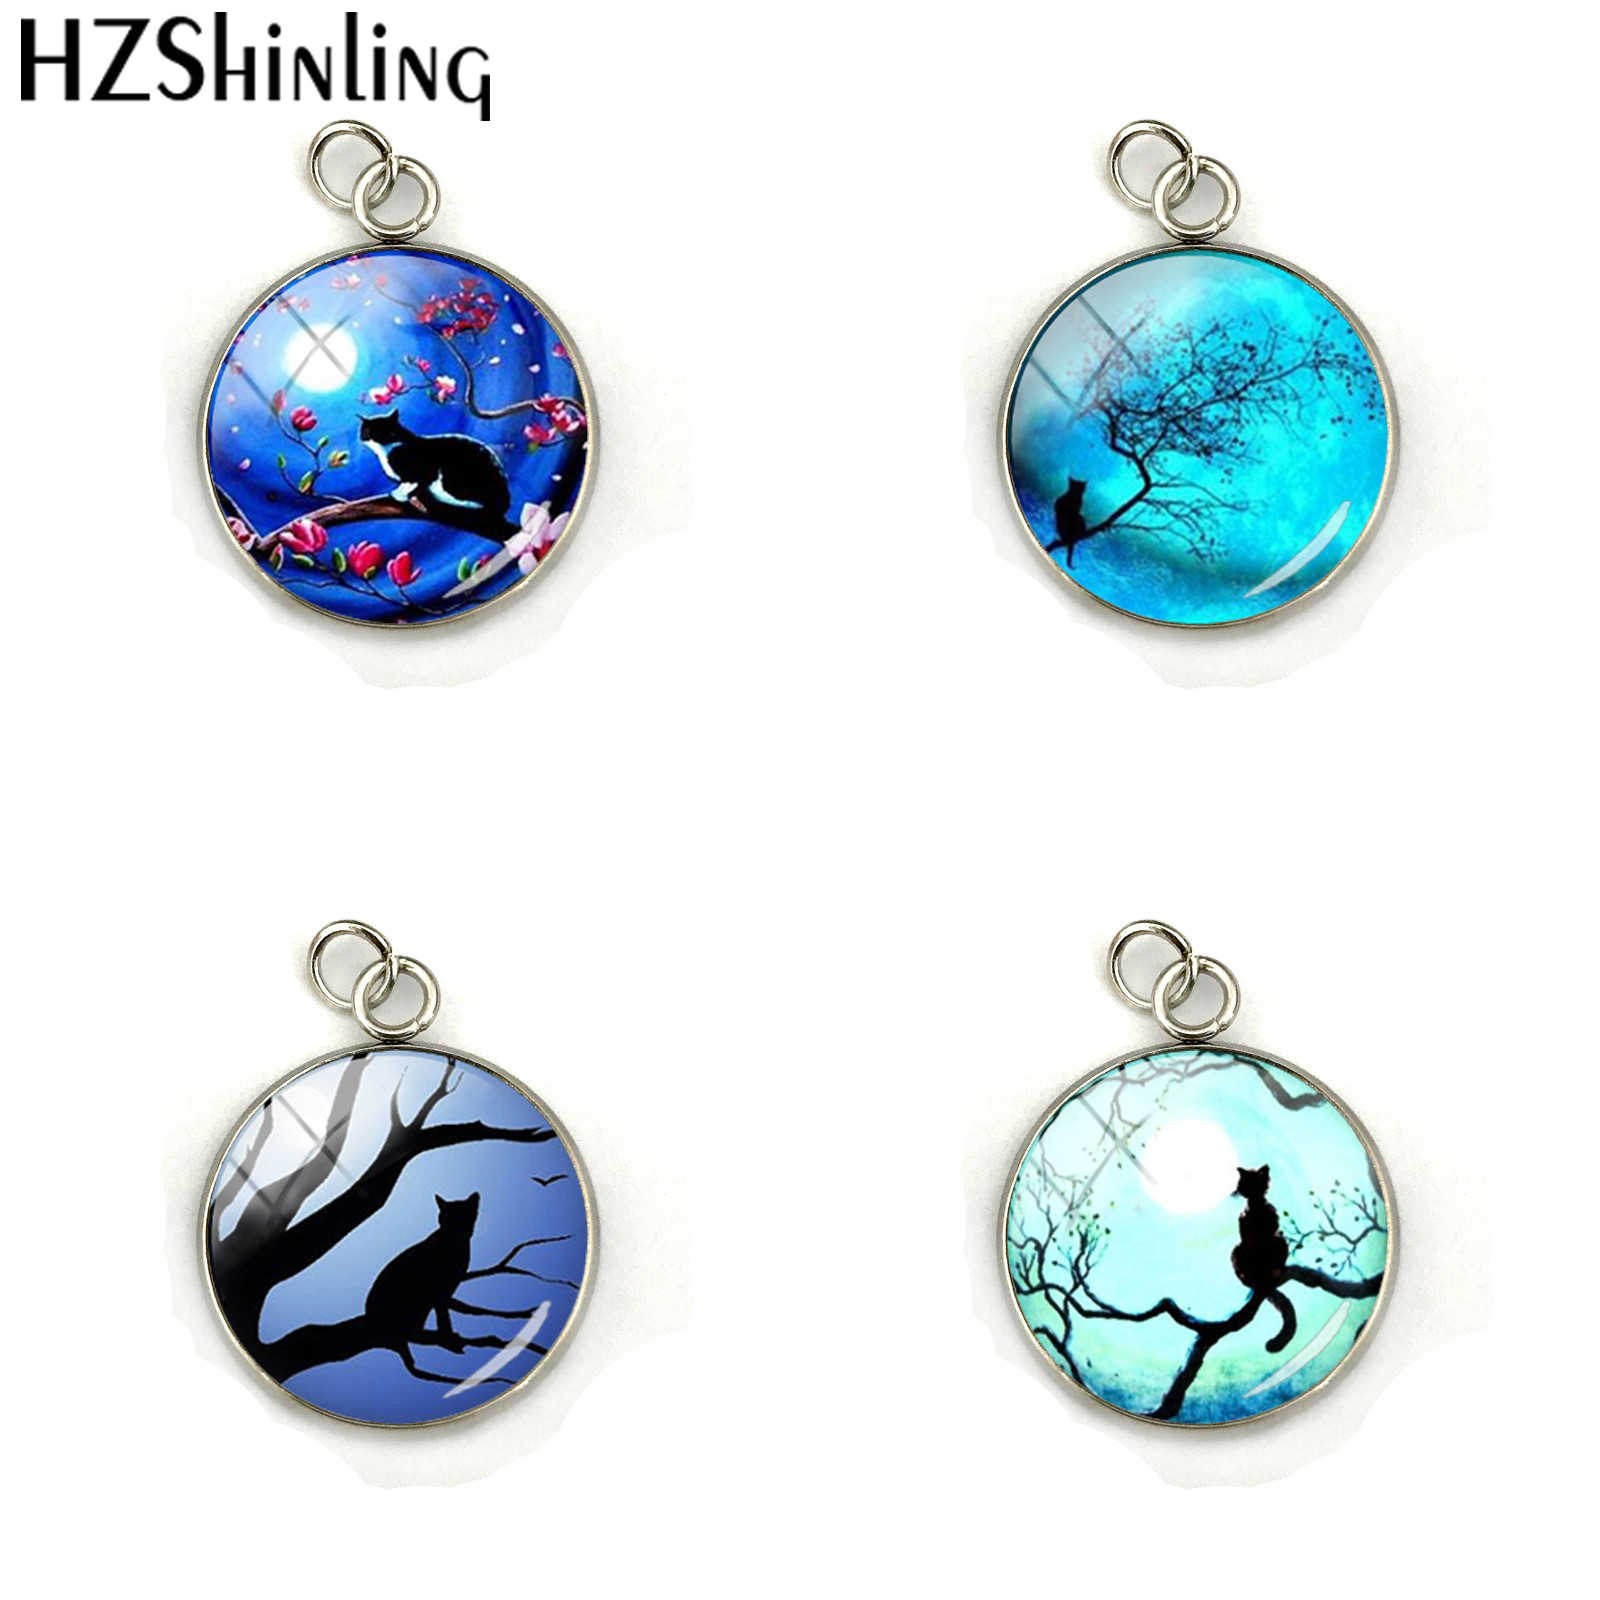 2018 New Fashion Glass Cabochon Round Blue Moon and Glass Pendants Kitten Galaxy Round Crystal Charms Jewelry Accessories